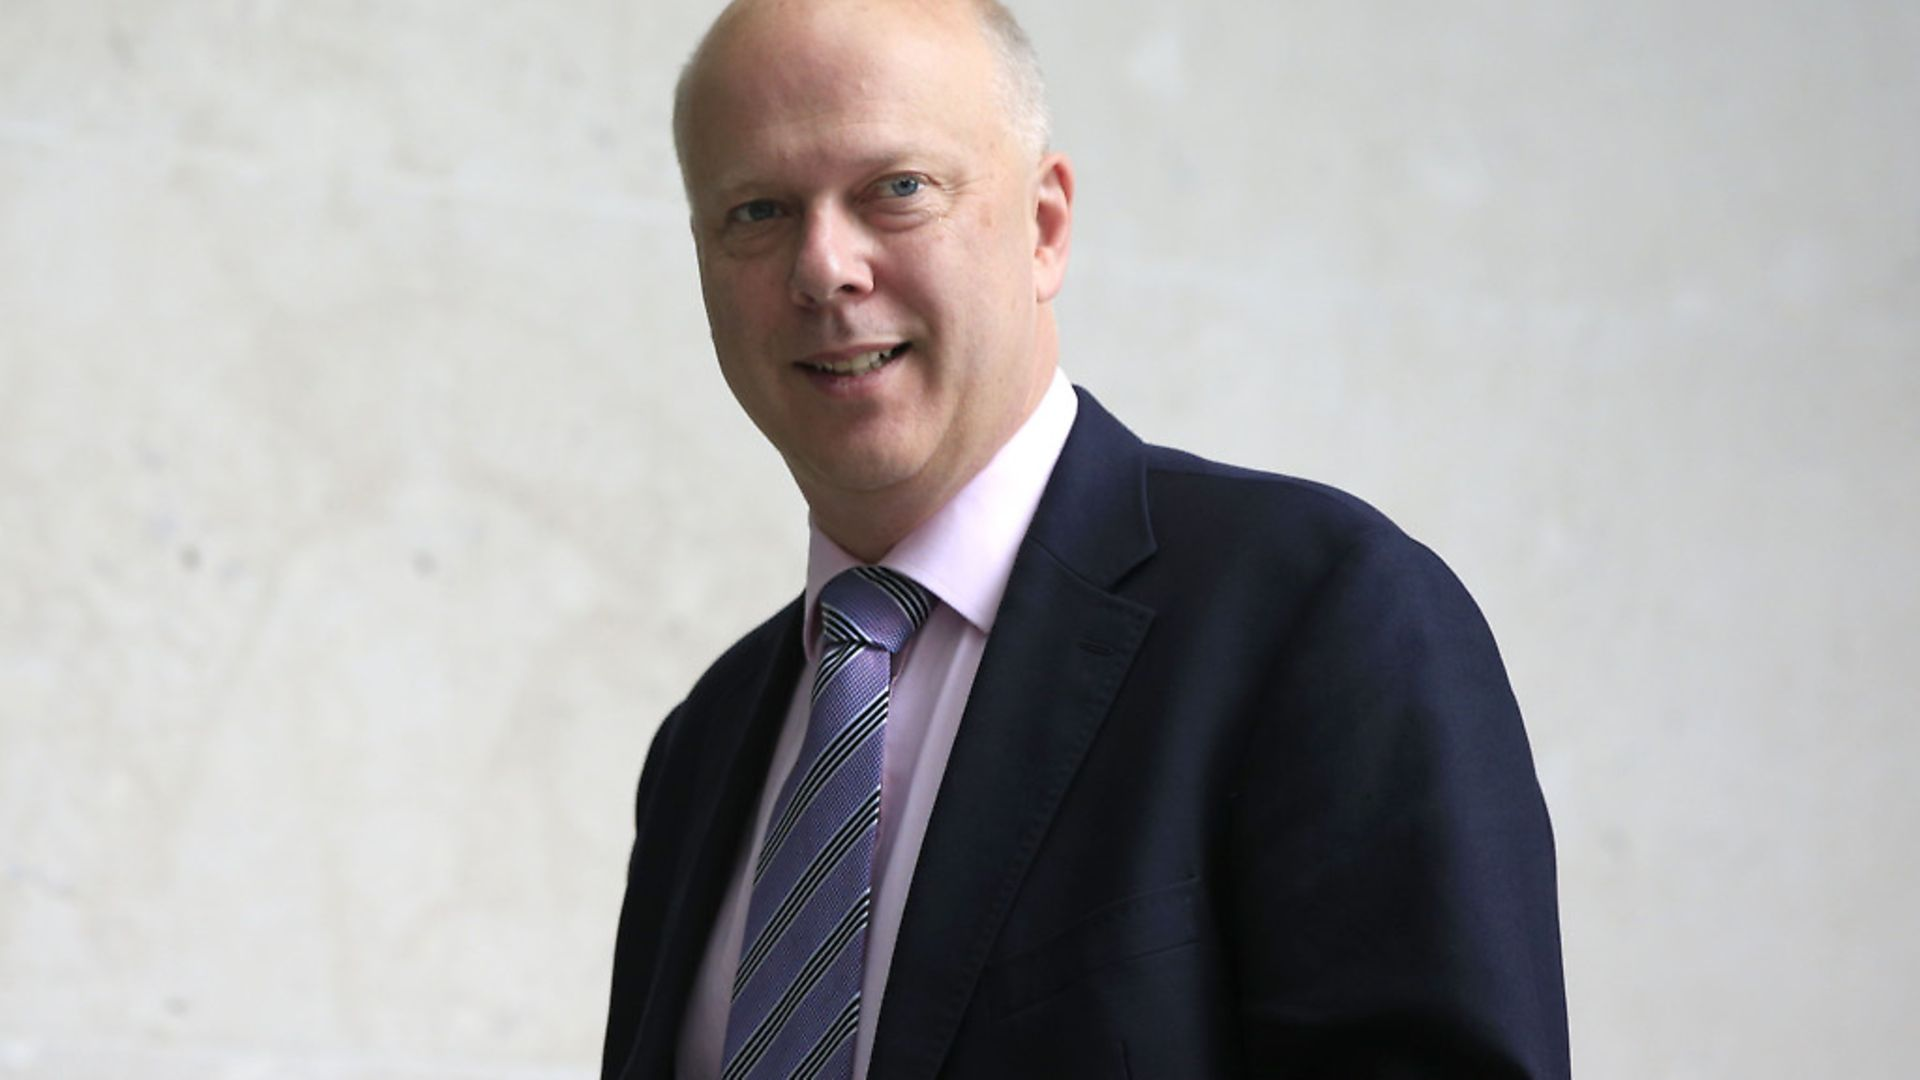 Former government minister and transport secretary Chris Grayling. Photograph: Jonathan Brady/PA. - Credit: PA Wire/PA Images